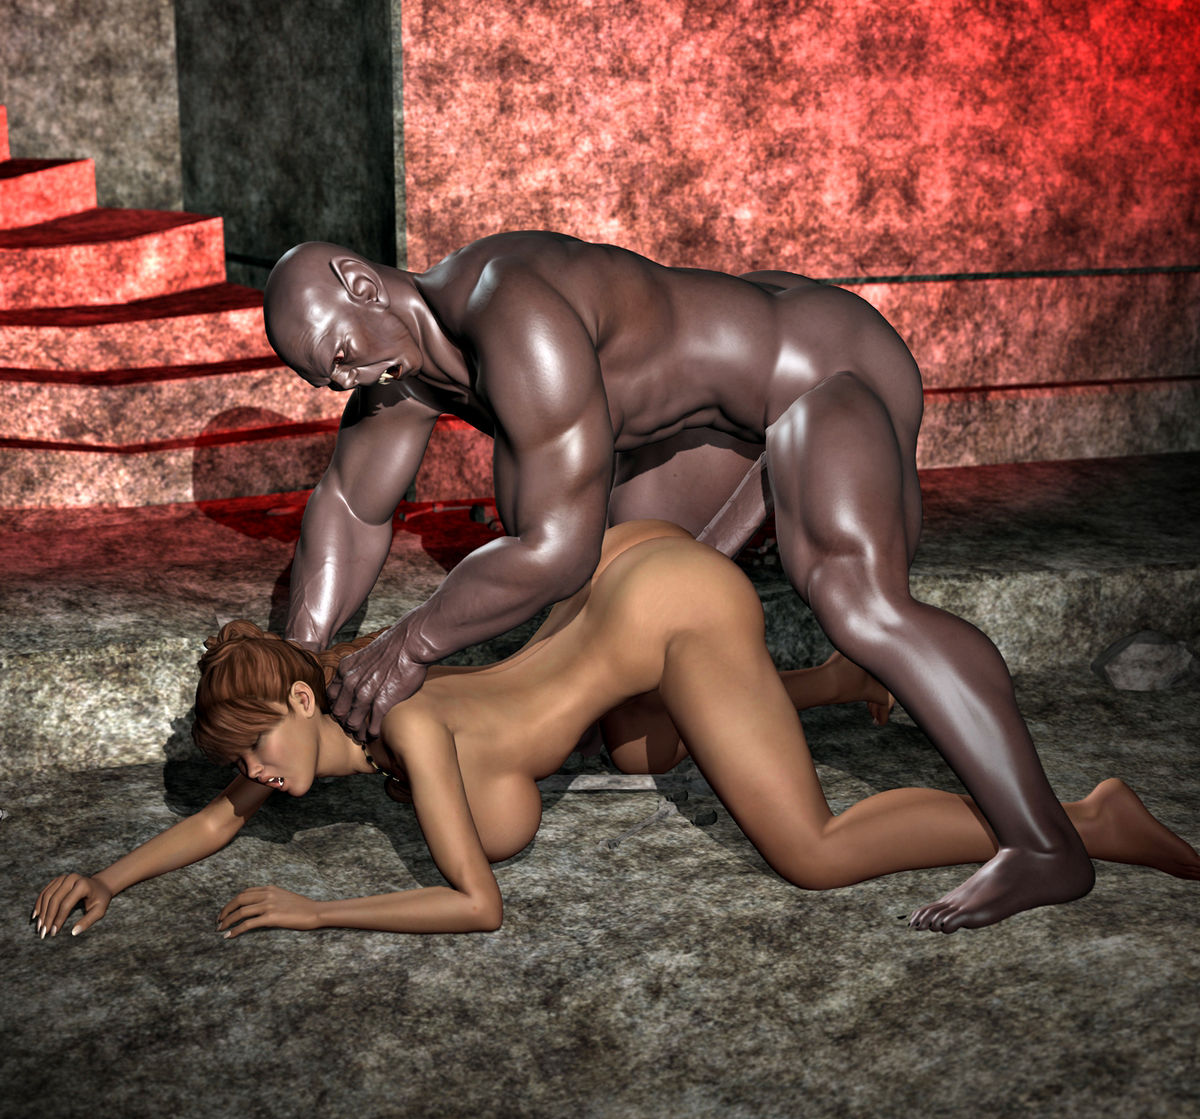 3d animated werewolf porn videos exposed galleries